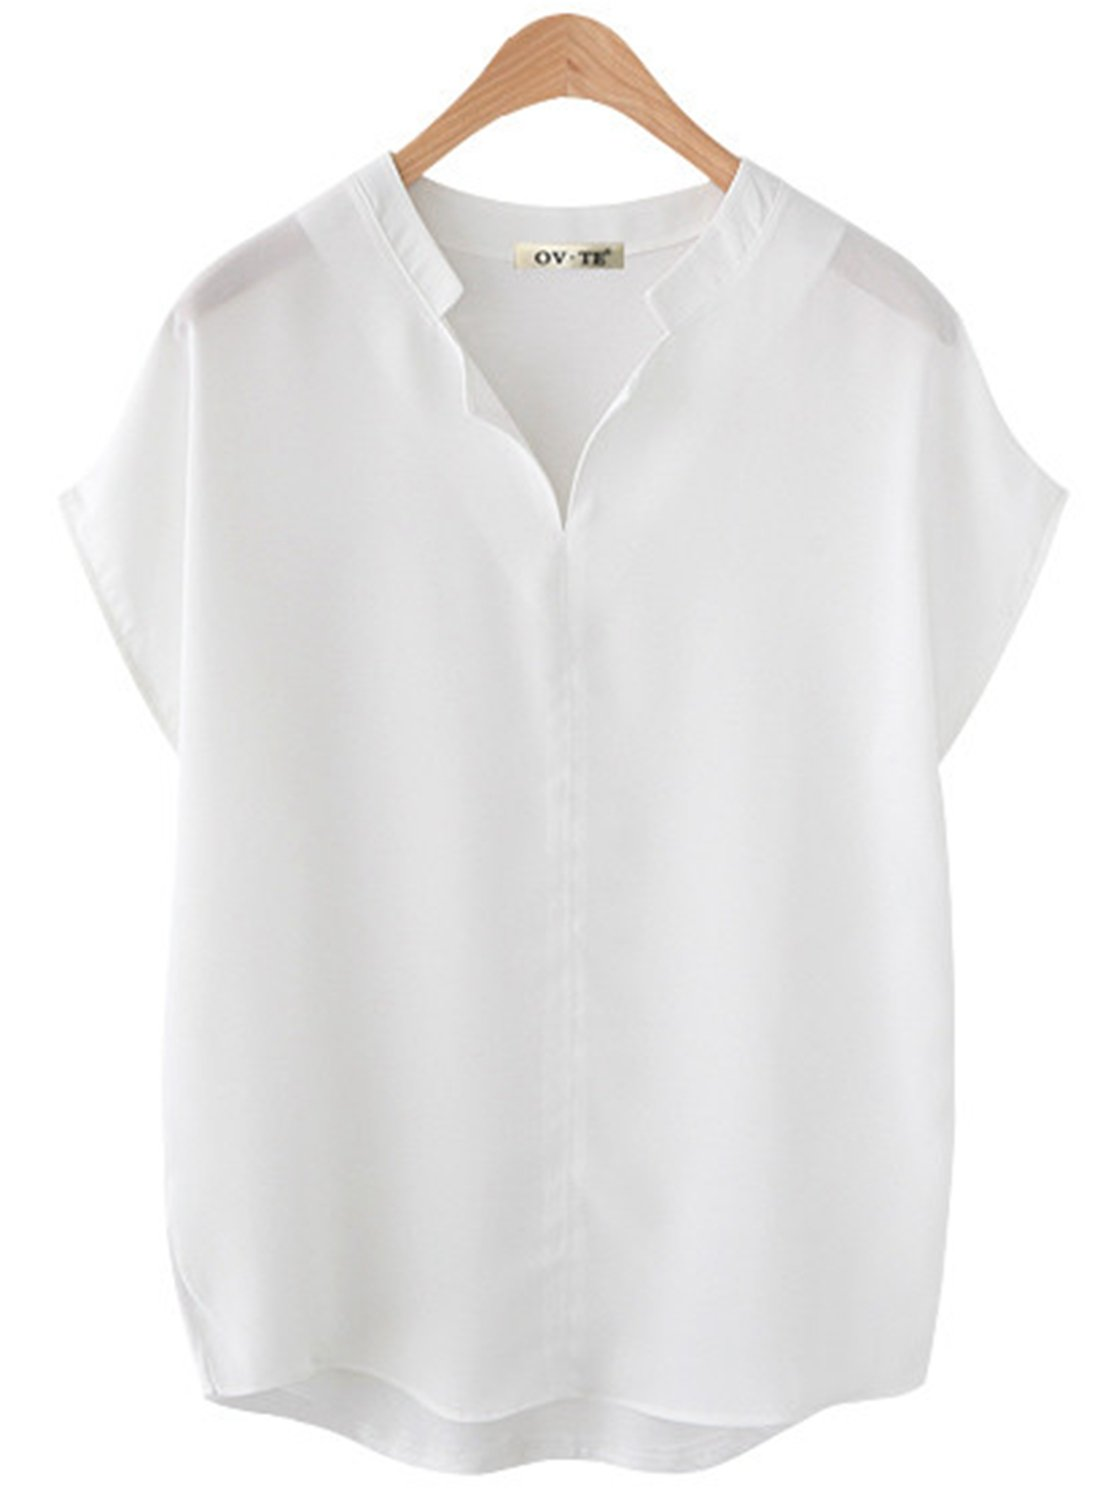 Women's V Neck Shirts Loose Fitting Batwing Short Sleeve Henley Shirts for Work (L, G-White)